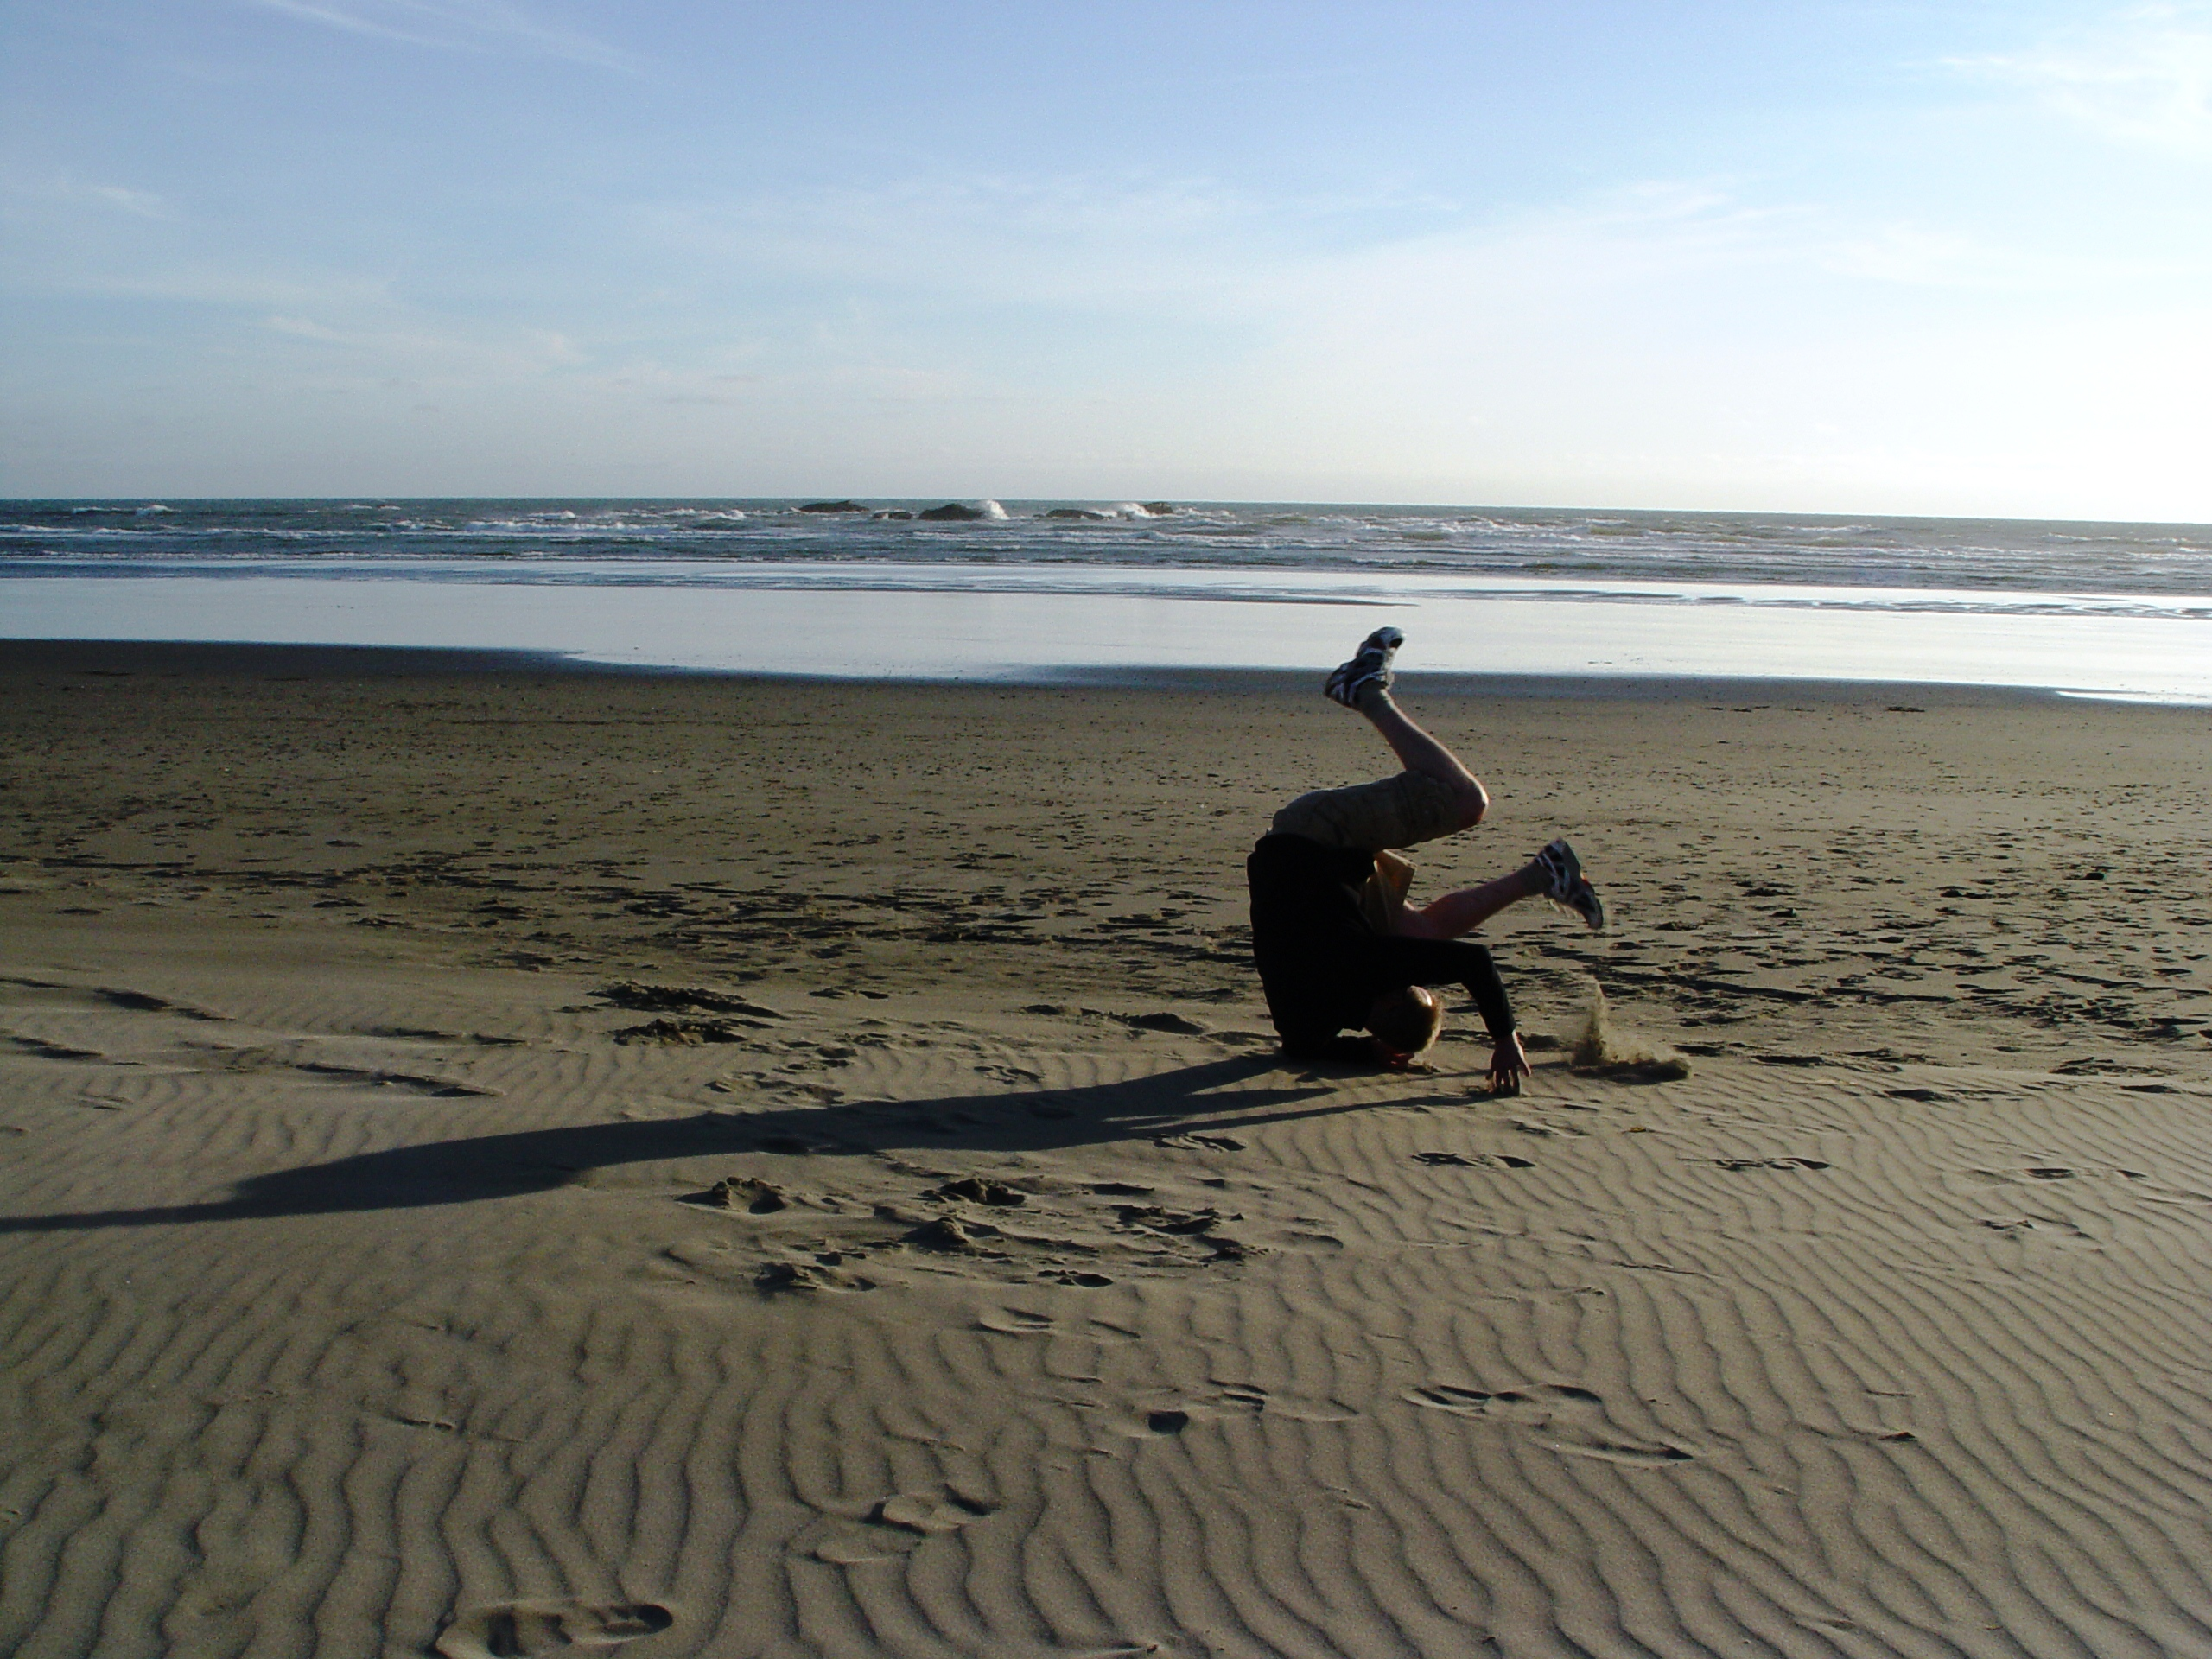 Hakan tumbling on a beach